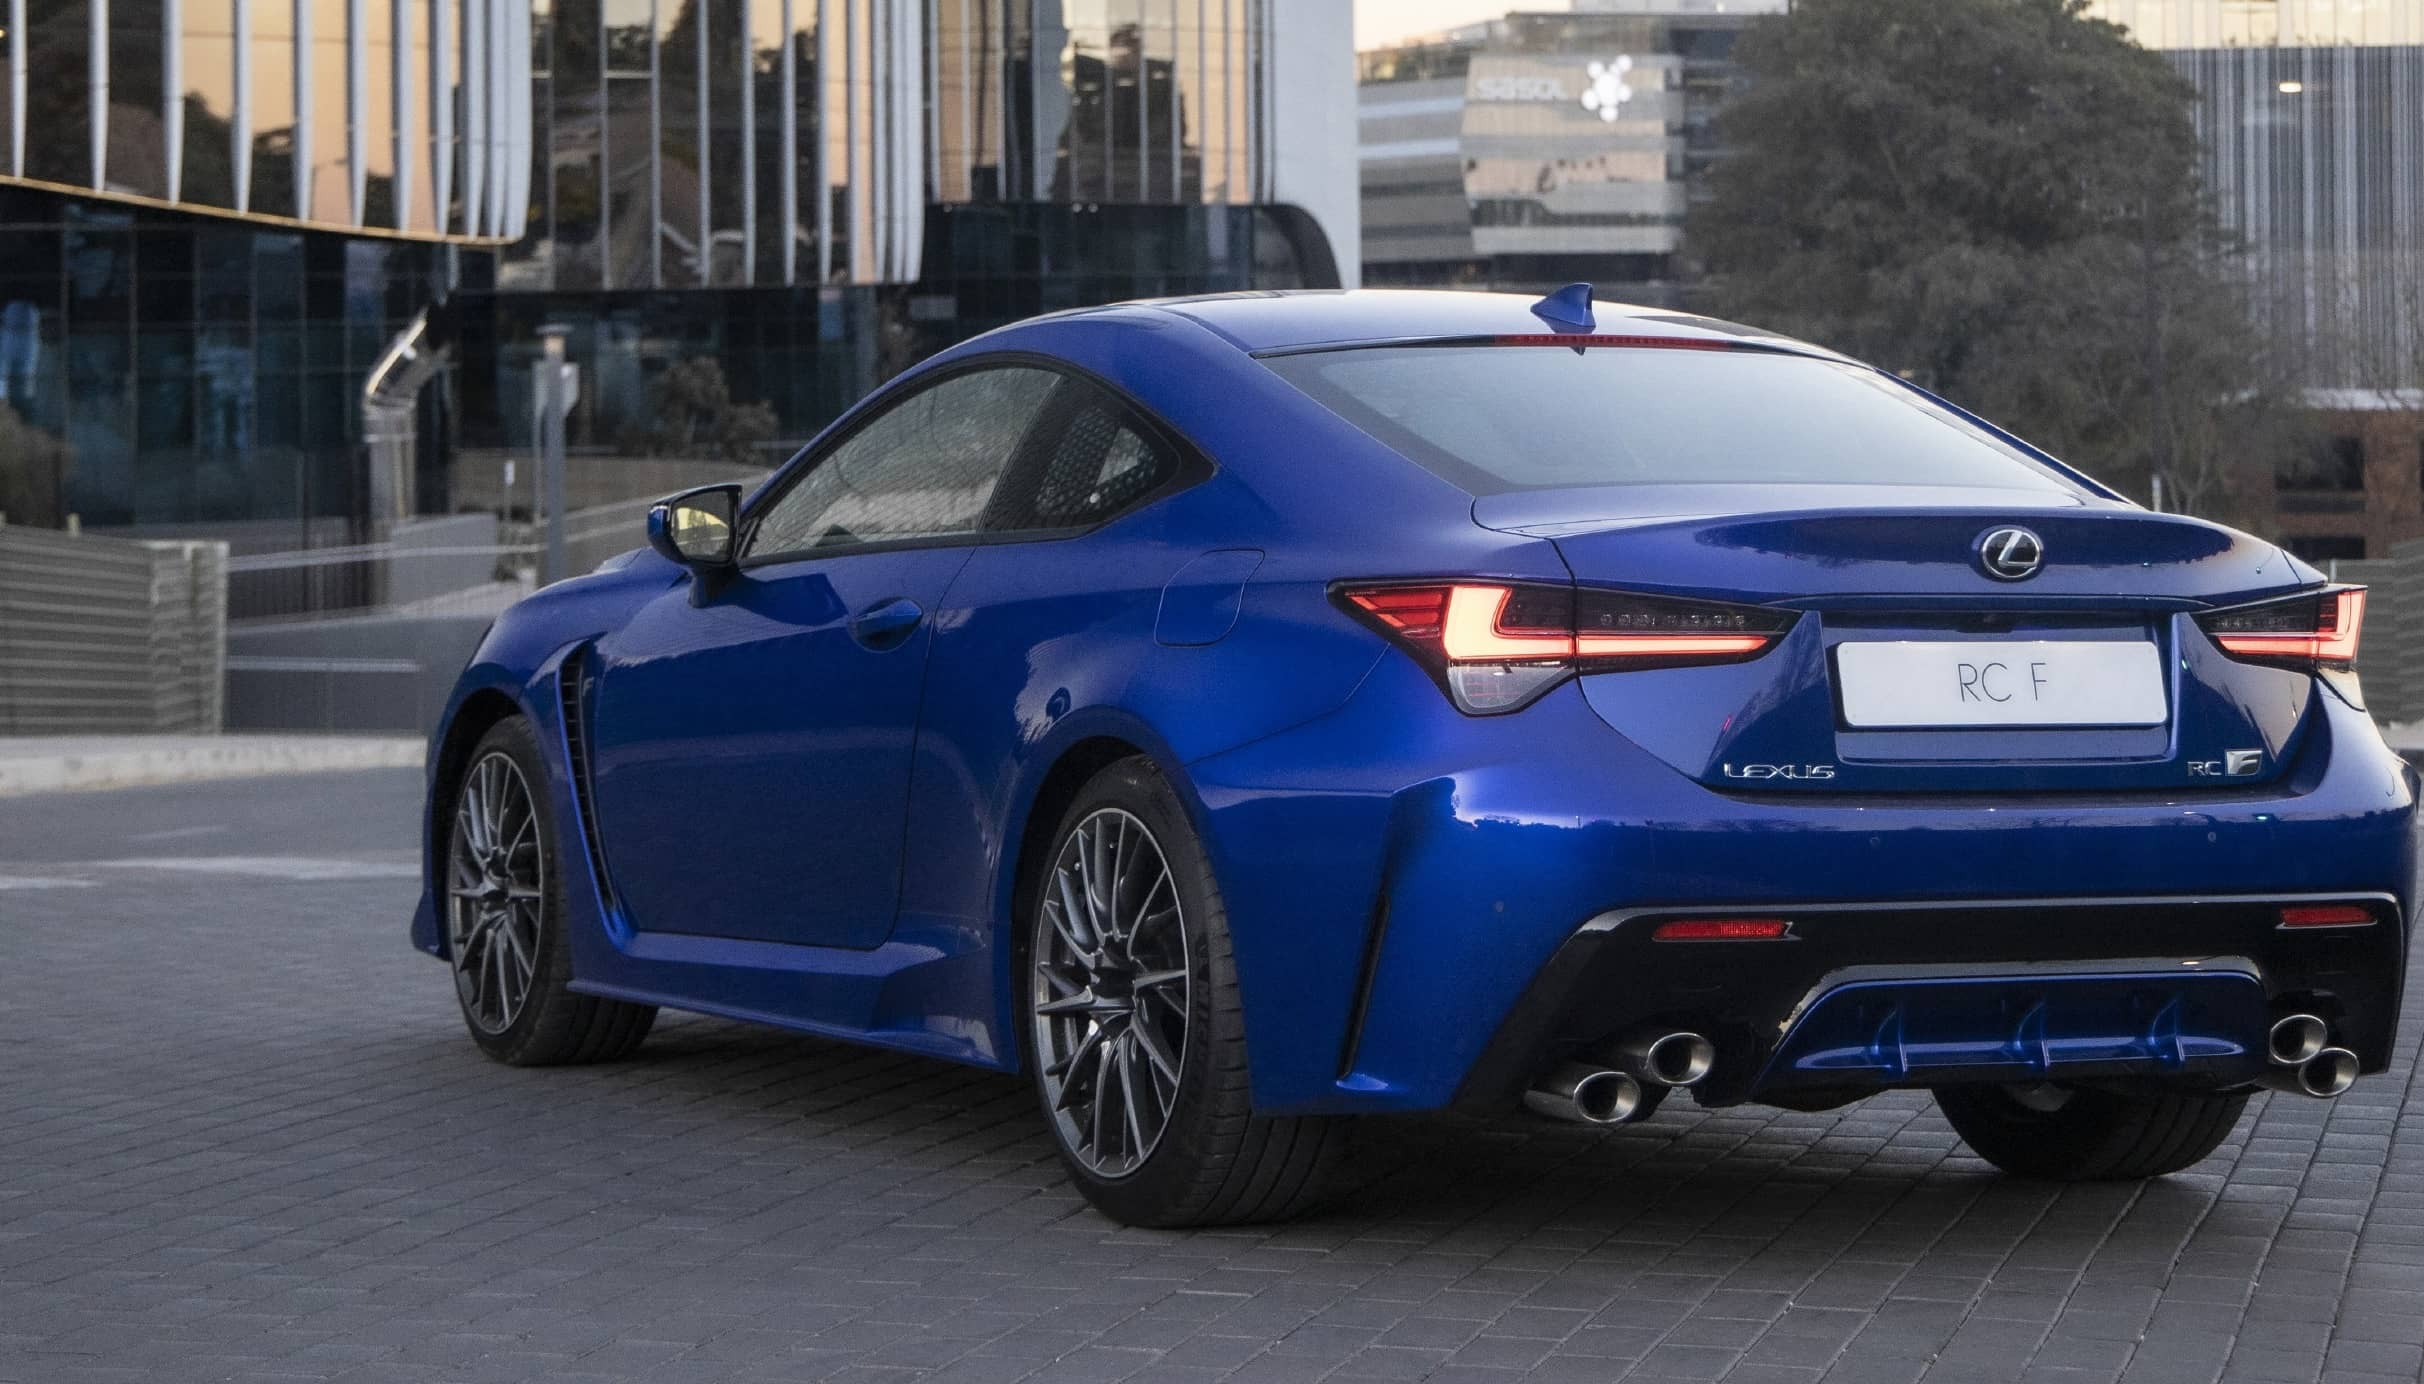 Lexus RC F The Sheep In Wolf's Clothing